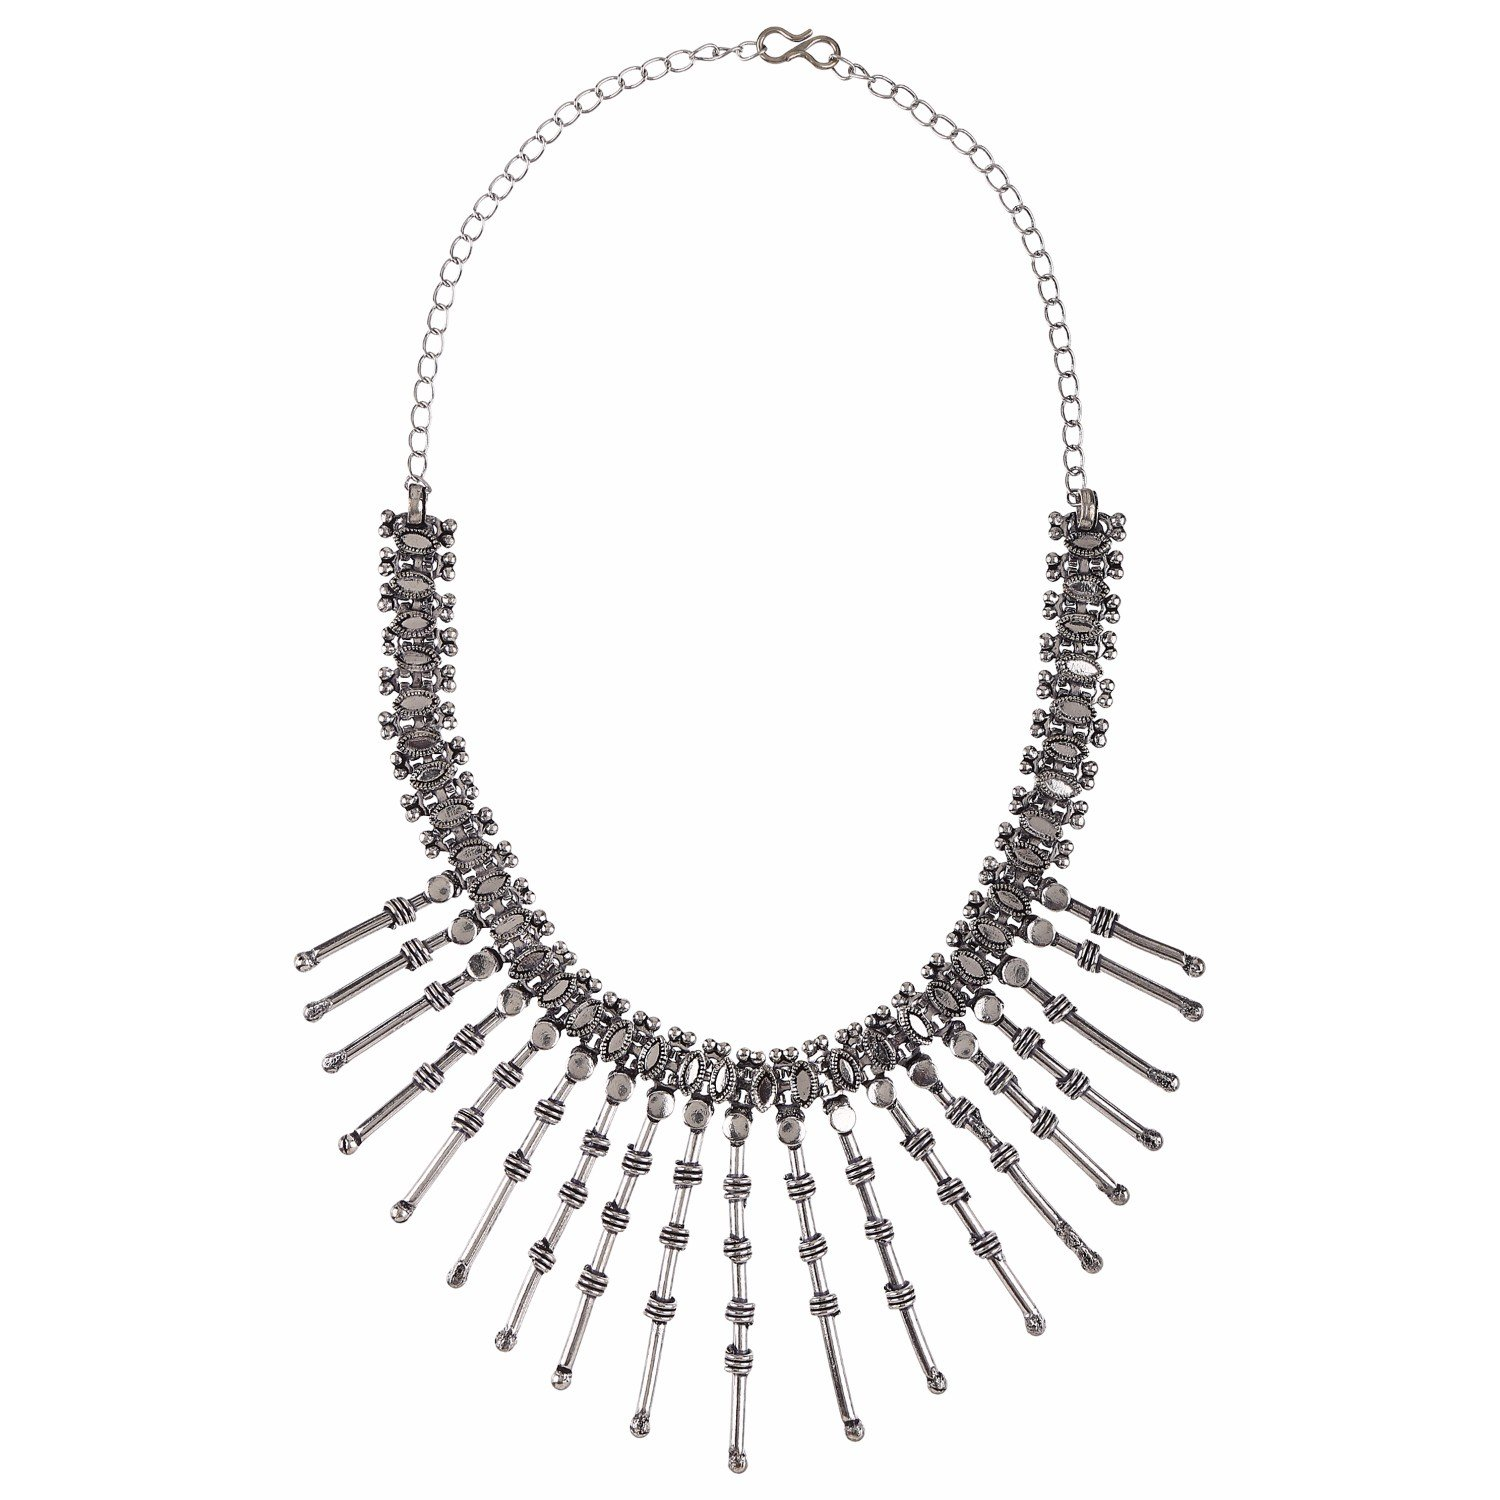 Efulgenz Indian Vintage Retro Ethnic Gypsy Oxidized Silver Tone Boho Necklace Jewellery for Girls and Women Gift for Her